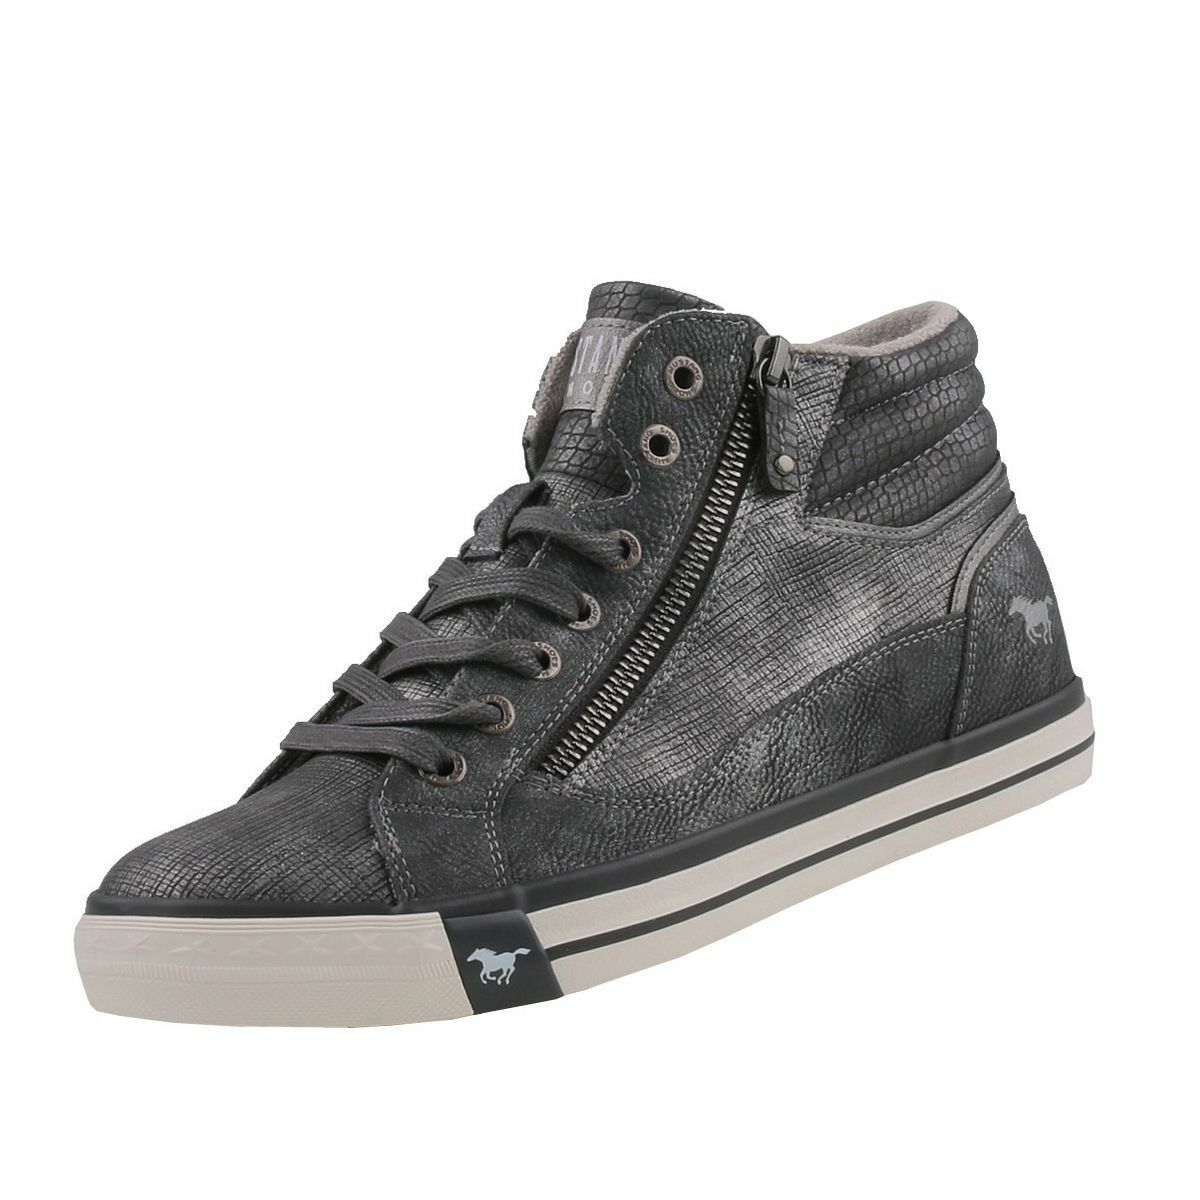 Neuf MUSTANG Chaussures Femmes Chaussures High Top baskets bottes Bottines Chaussure Lacée